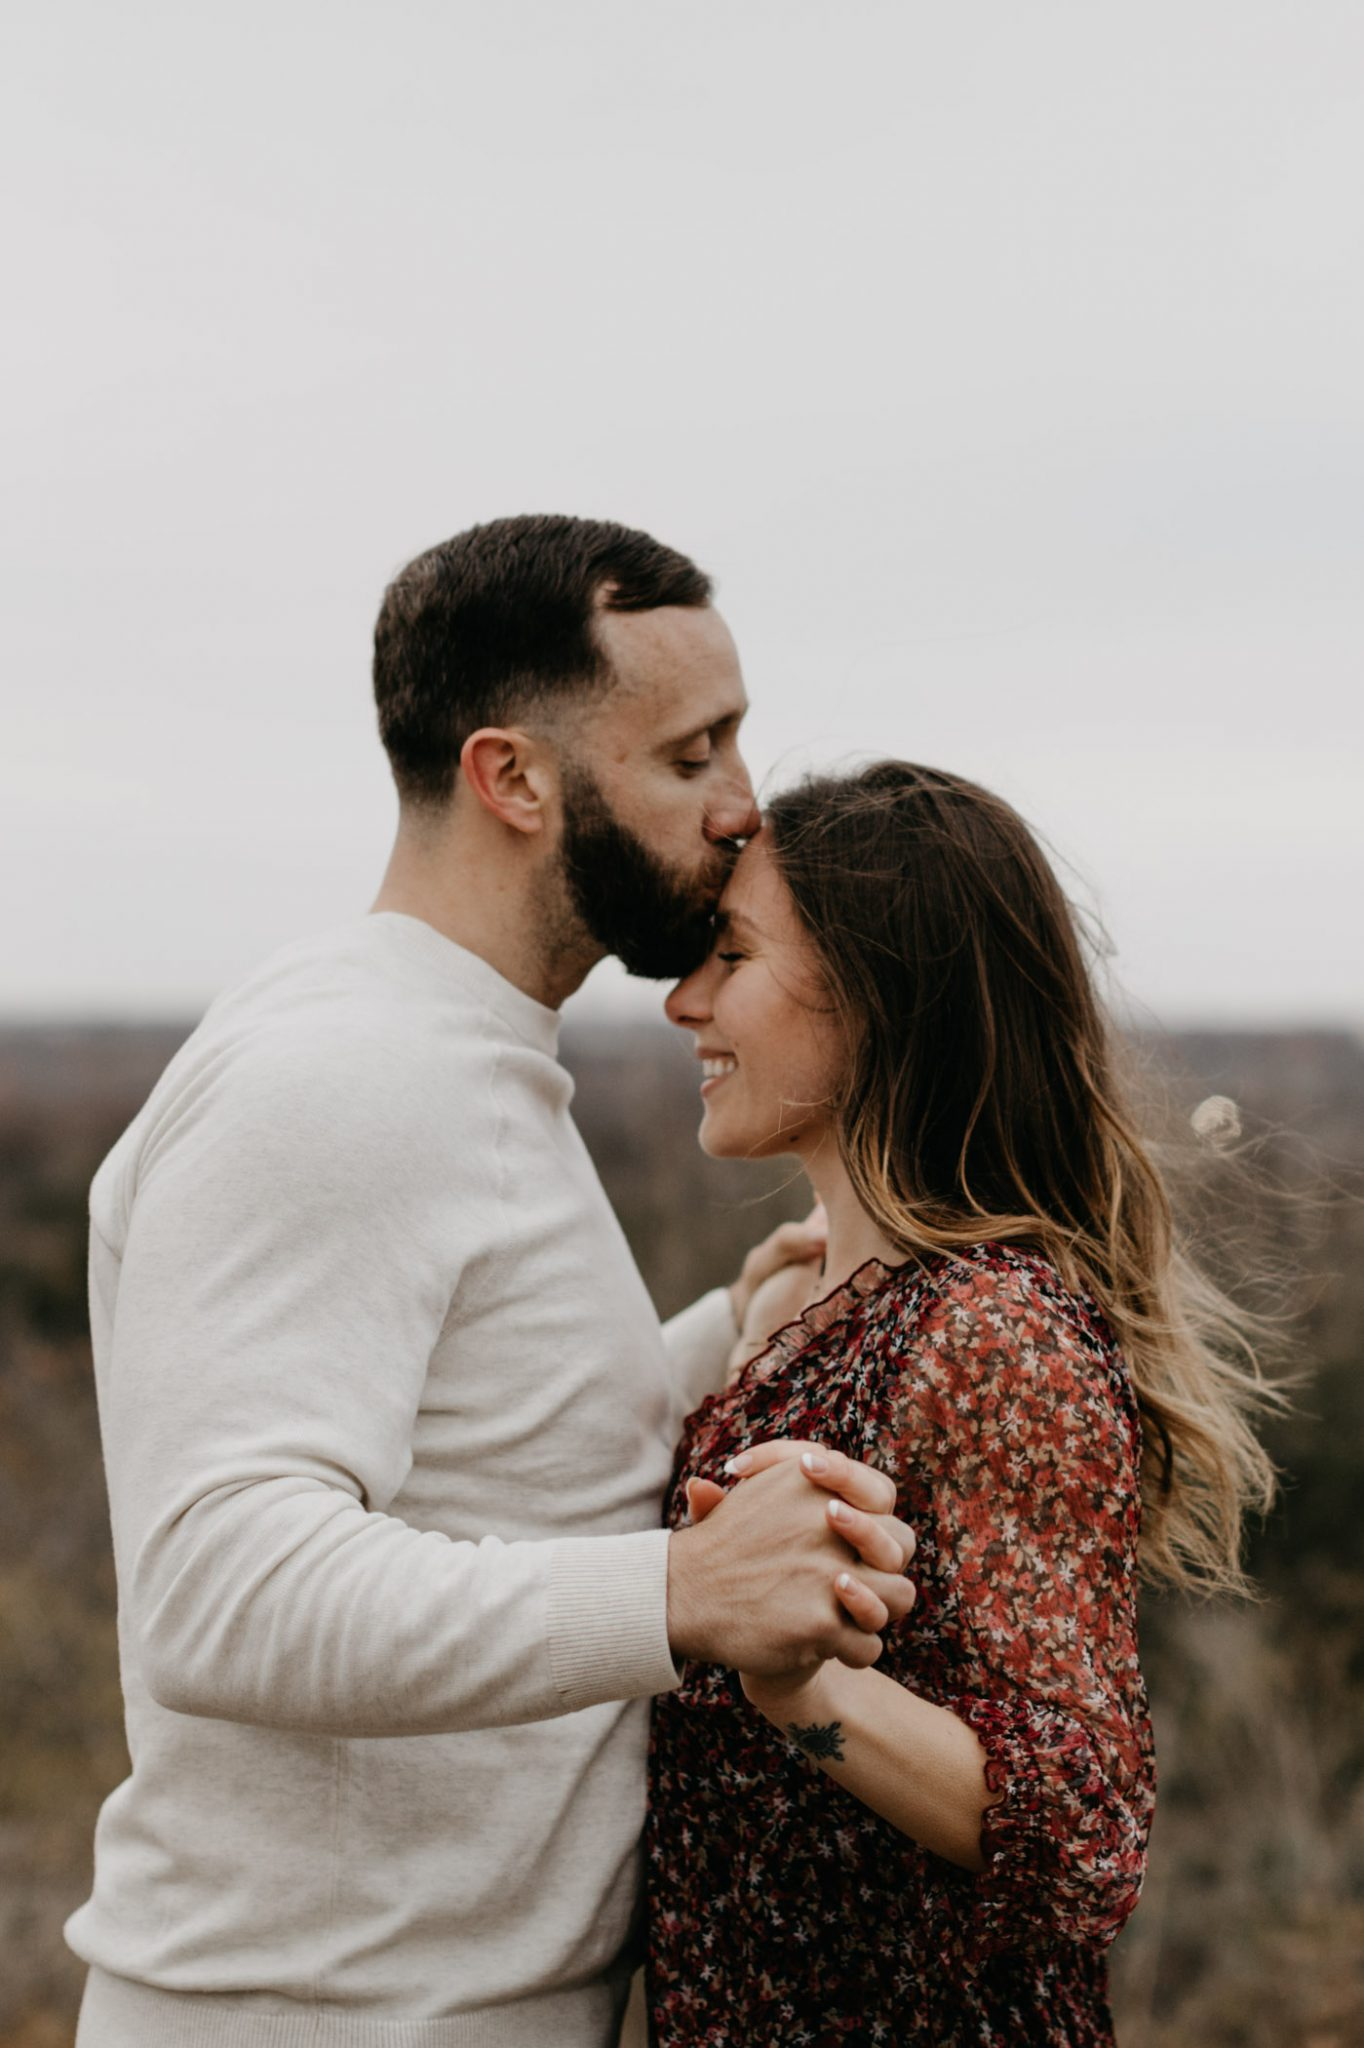 Boy kissing girl on forehead during romantic engagement session in Fort Worth